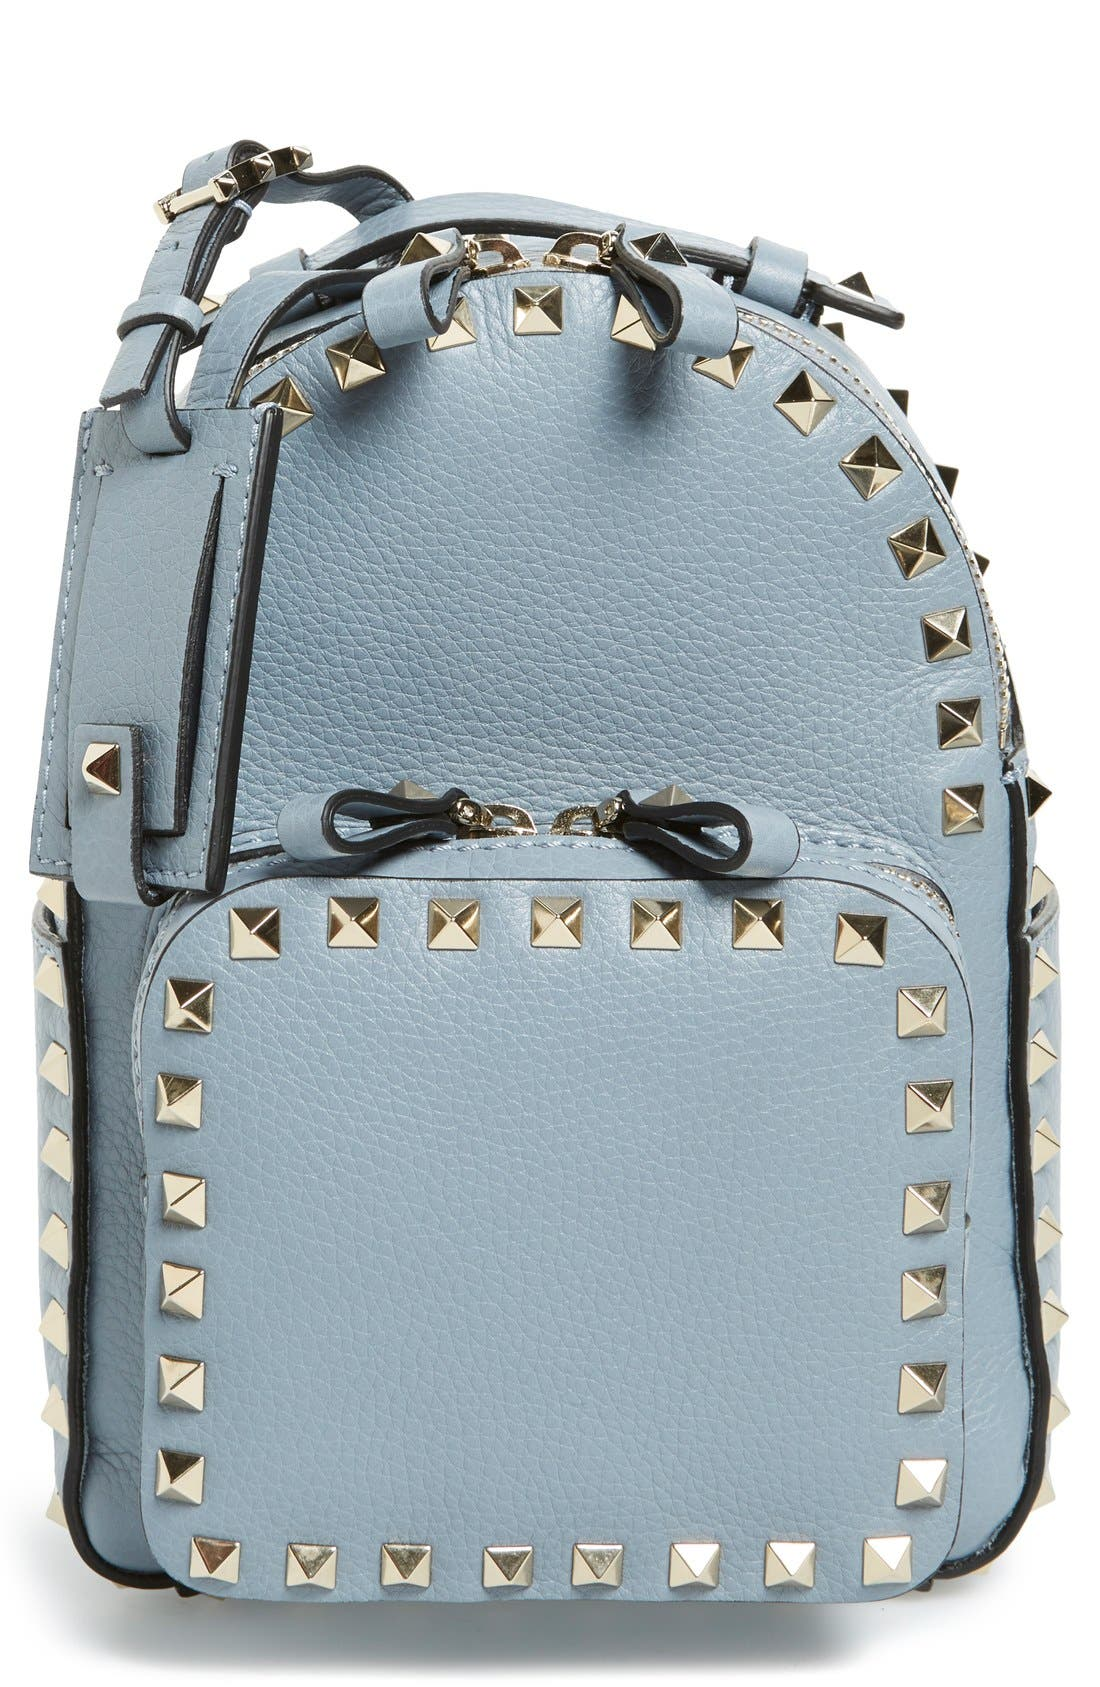 Alternate Image 1 Selected - Valentino 'Small Rockstud' Leather Backpack